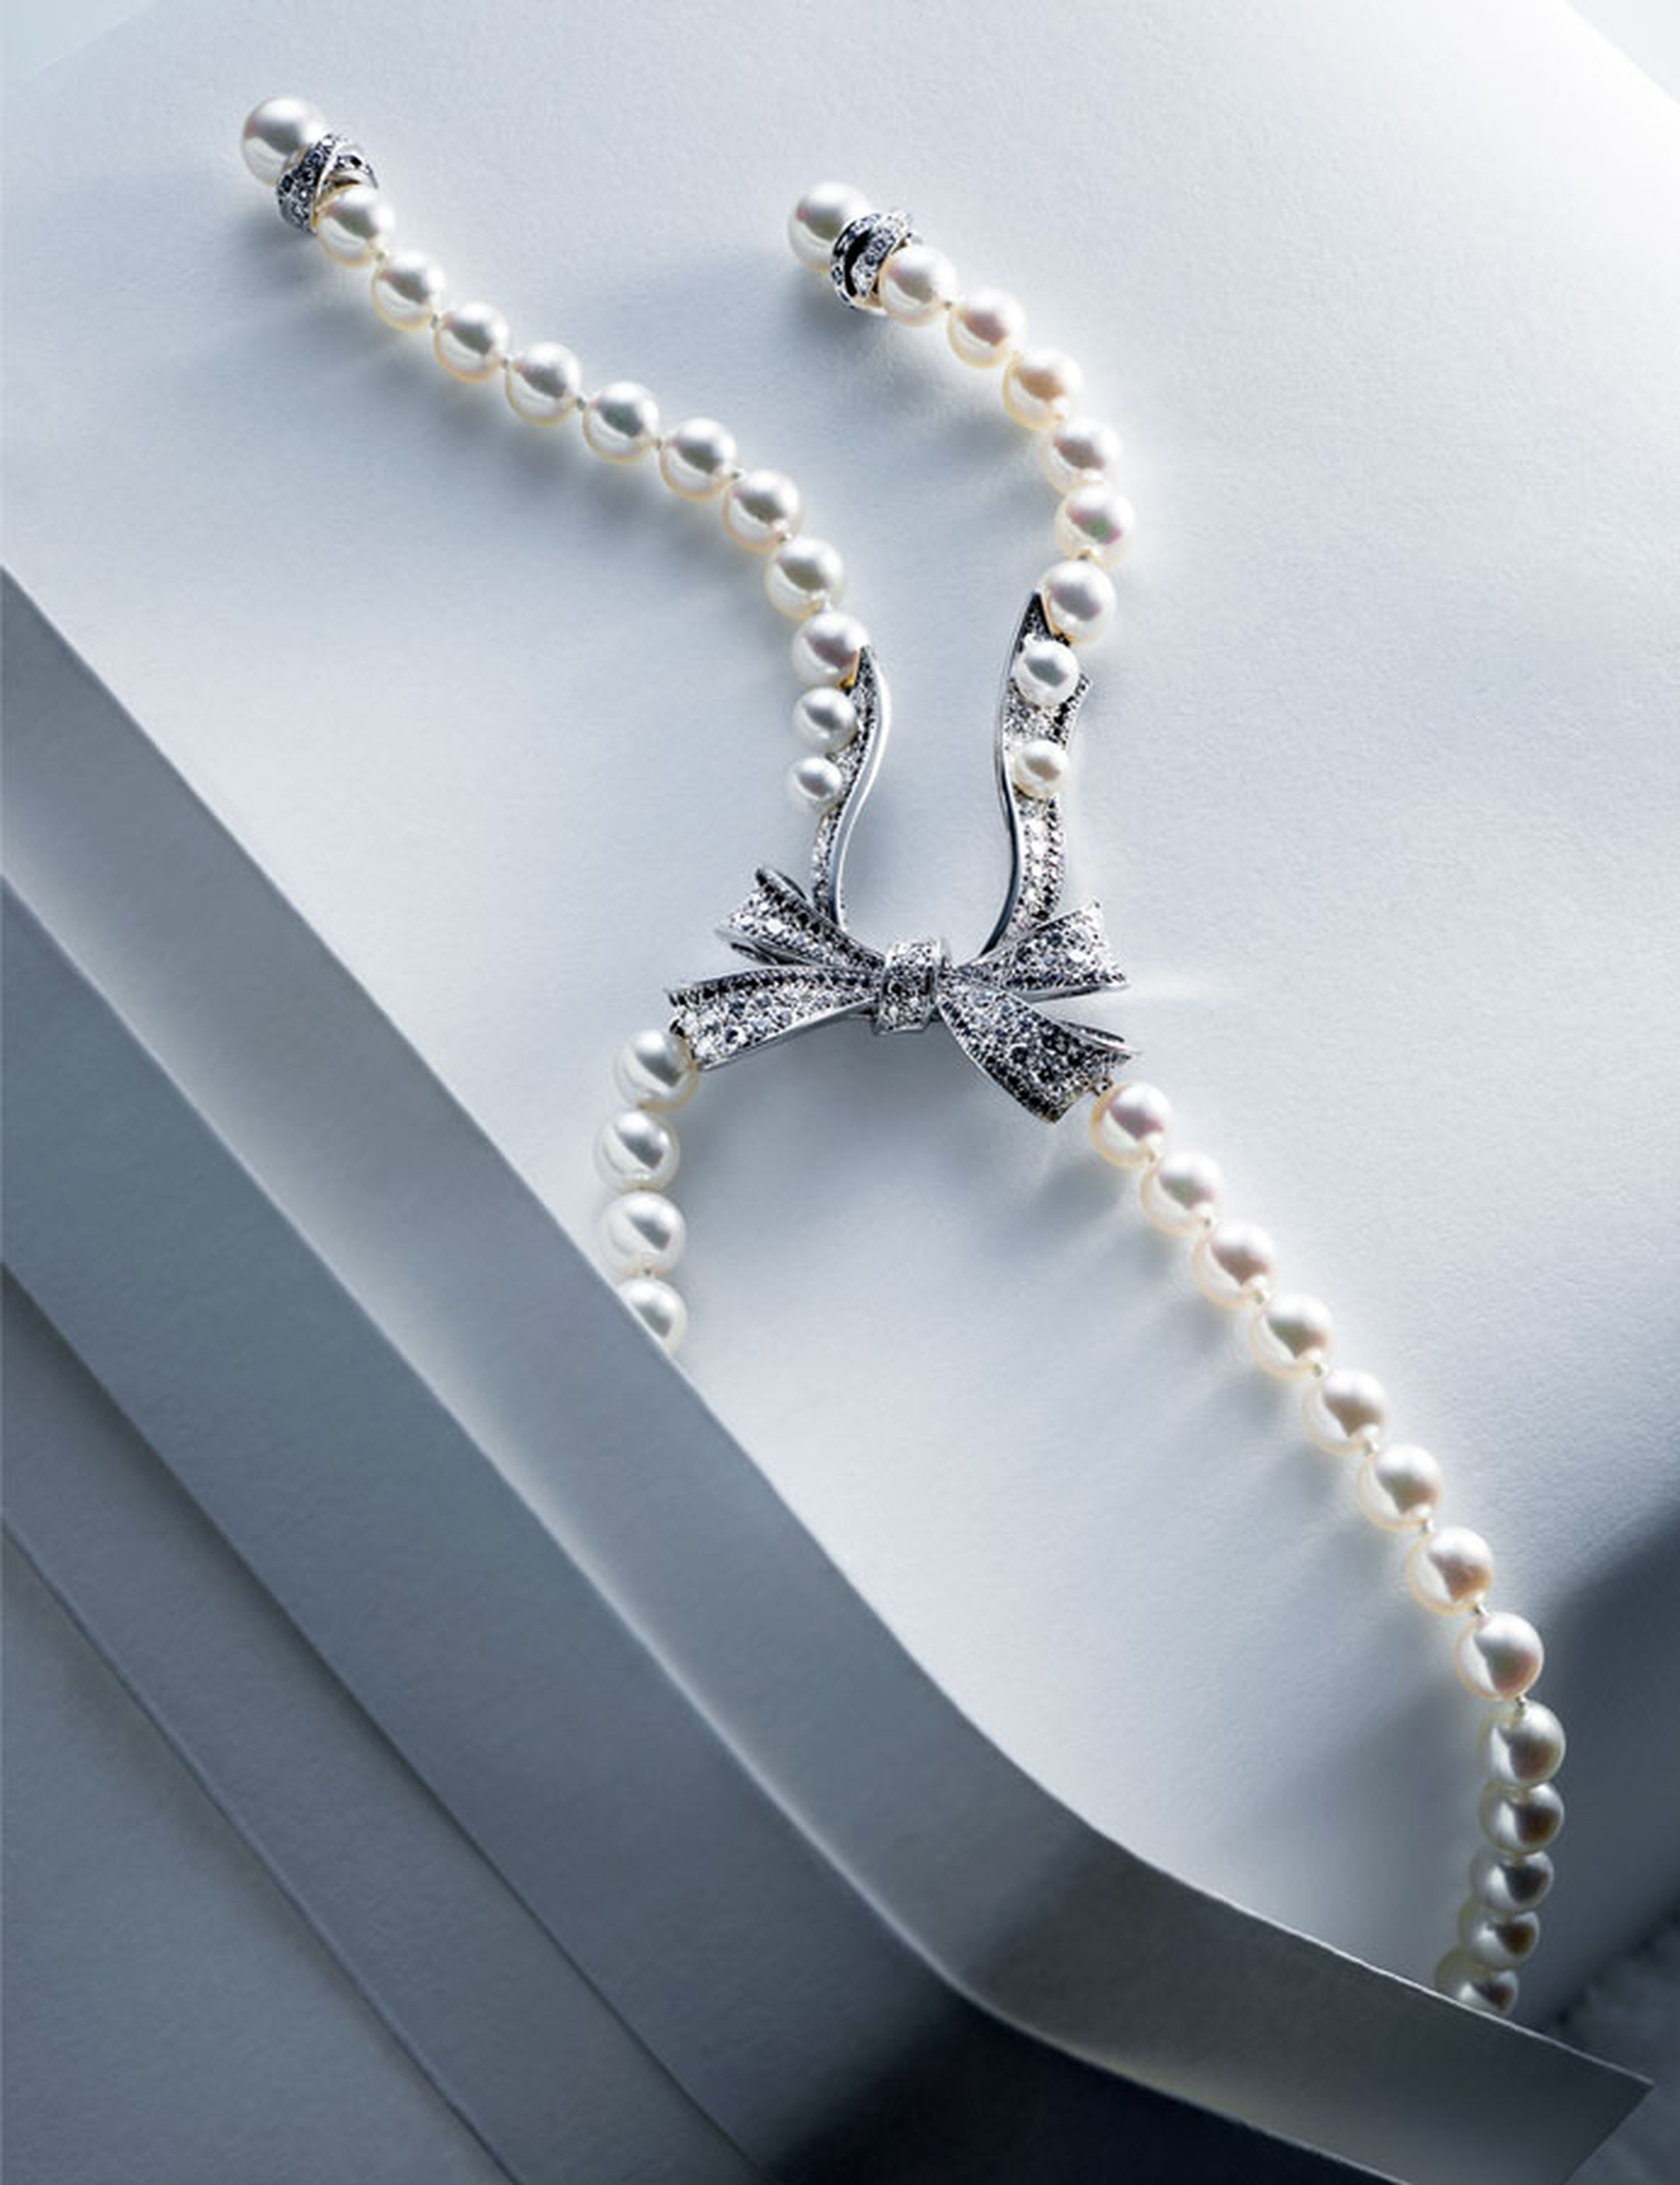 Chanel Boucles de Came´lia necklace in white gold set with white and black diamonds and Akoya pearls